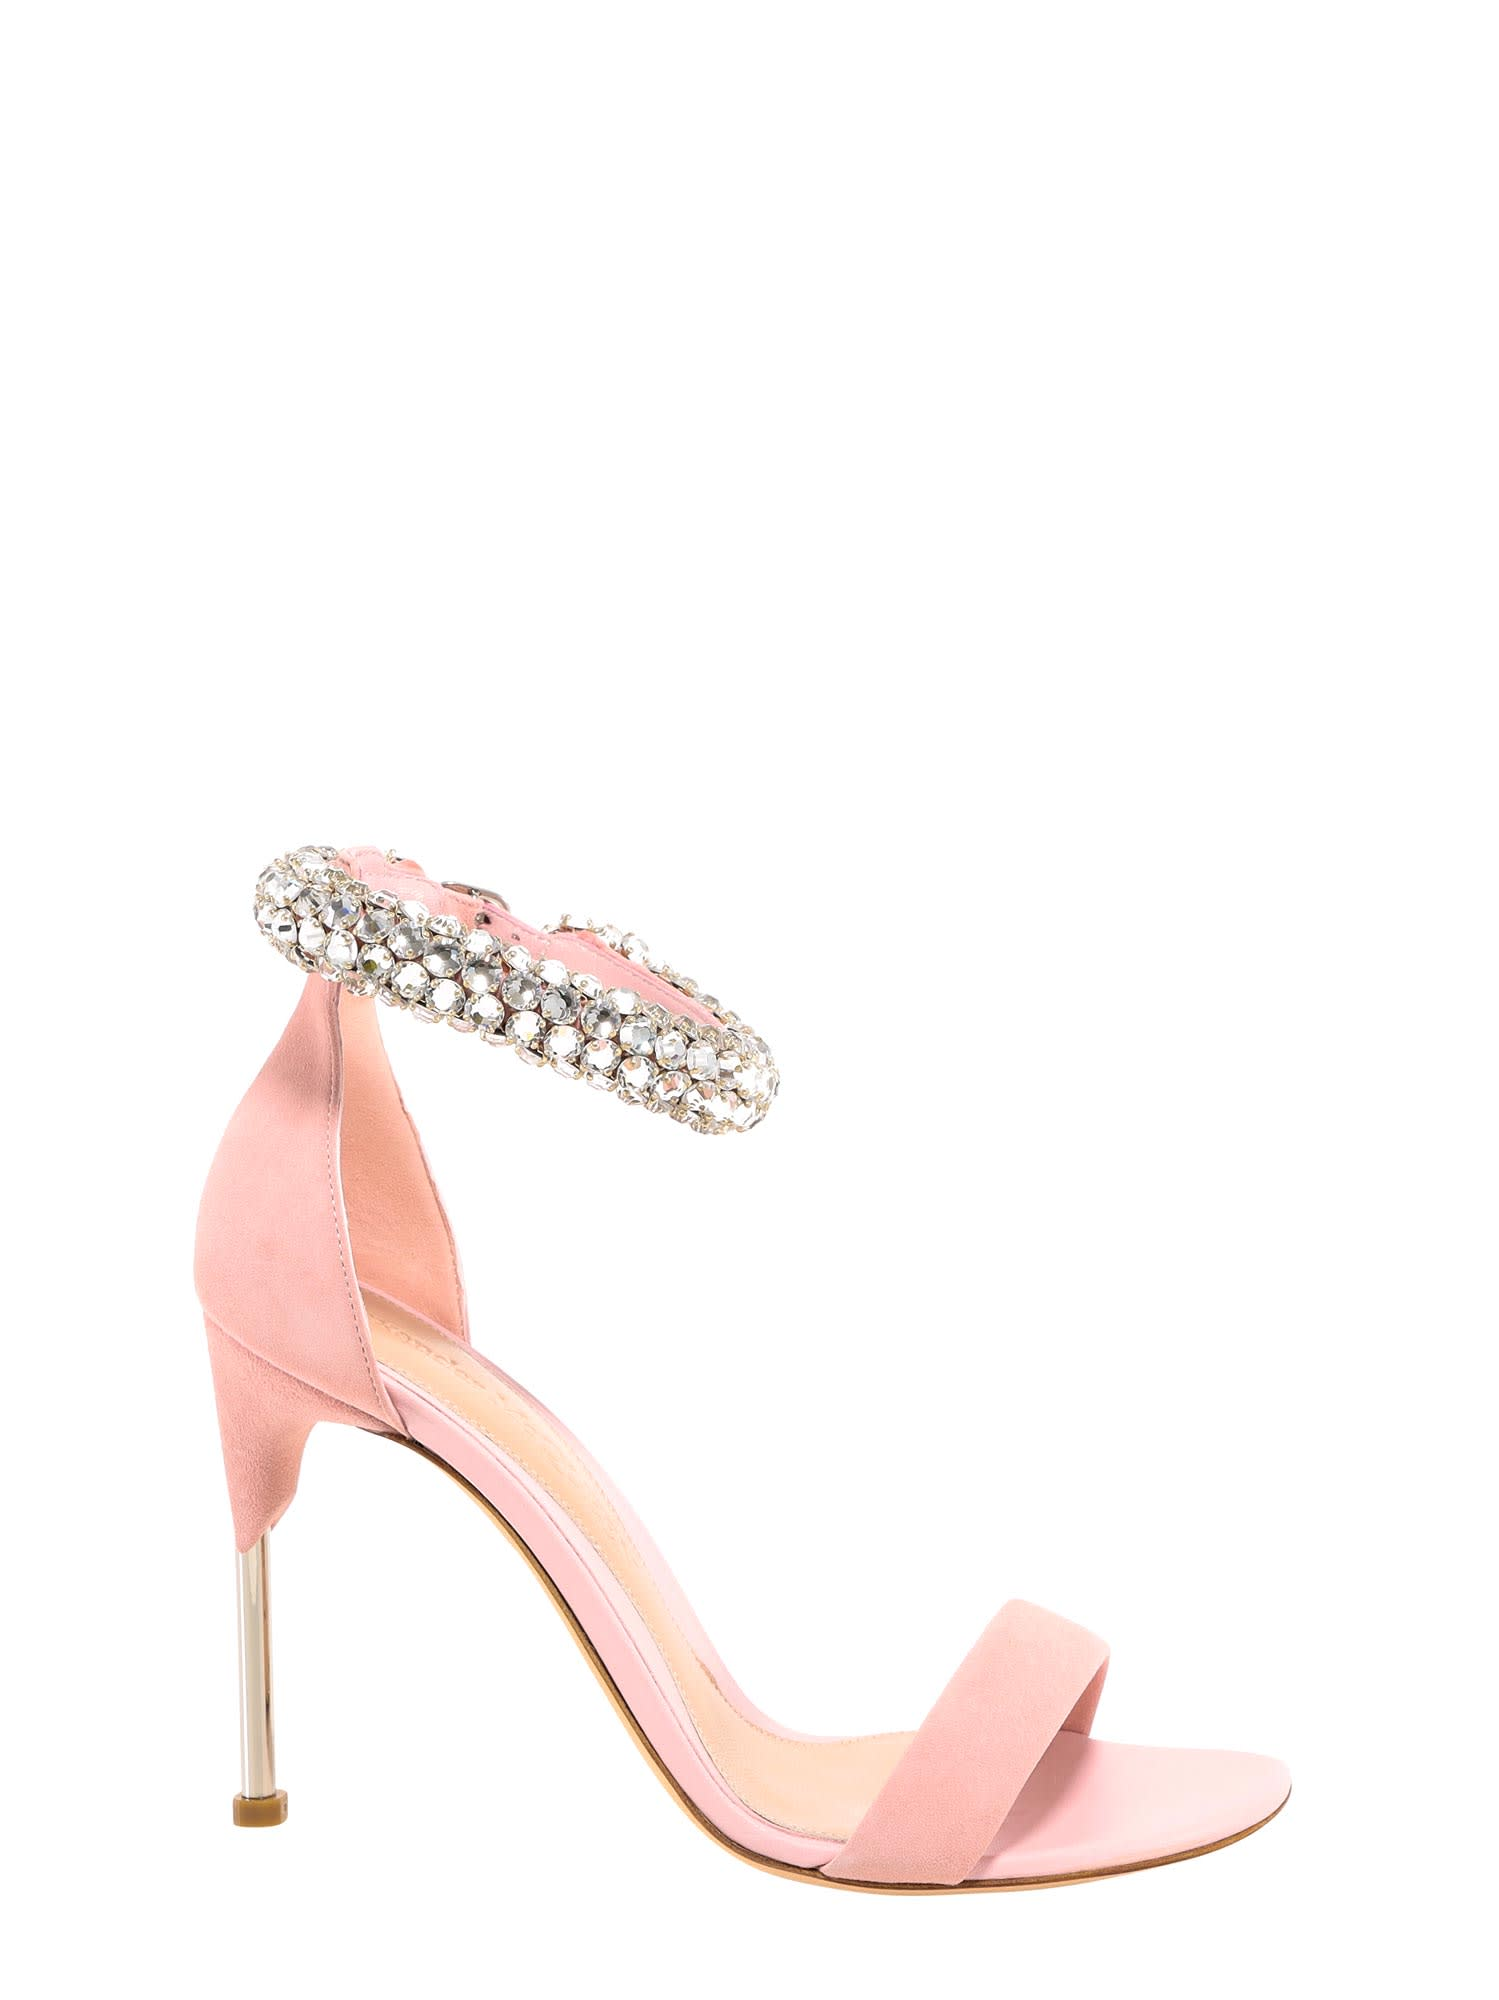 Buy Alexander McQueen Crystal Strap Sandals online, shop Alexander McQueen shoes with free shipping